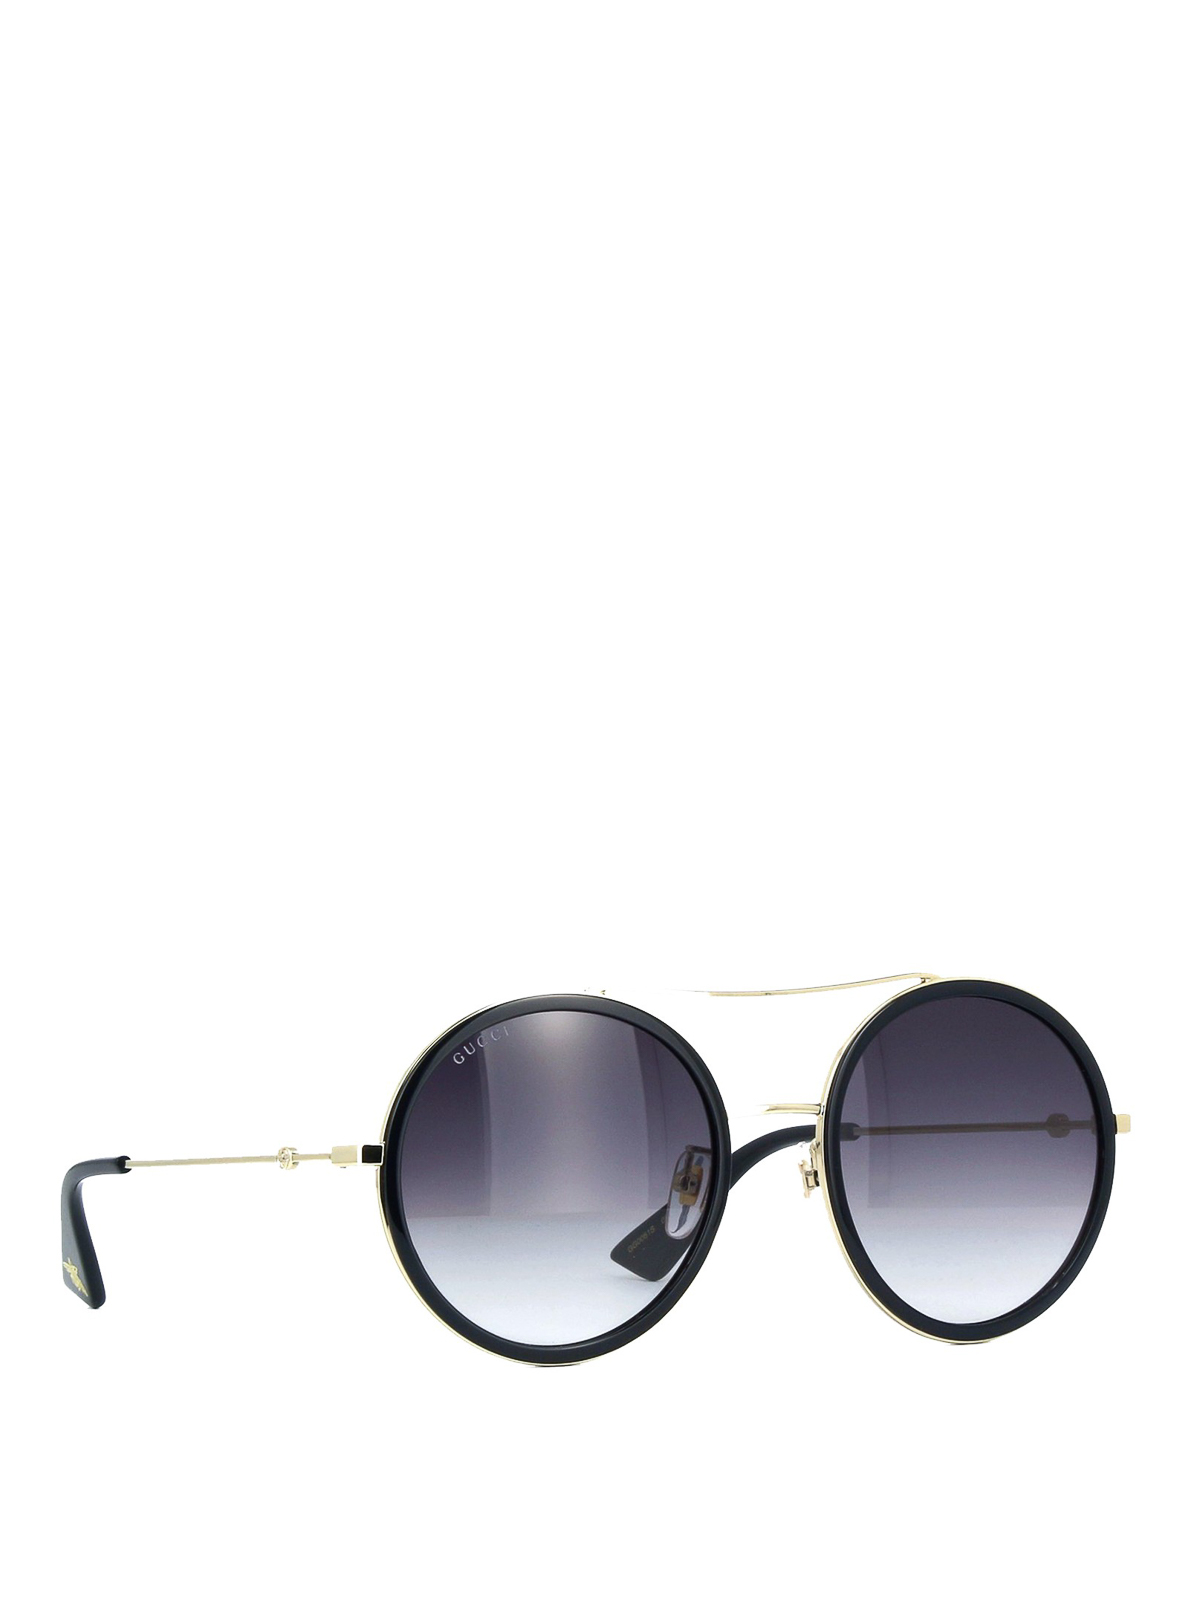 Gucci , Bee detailed black and gold round sunglasses